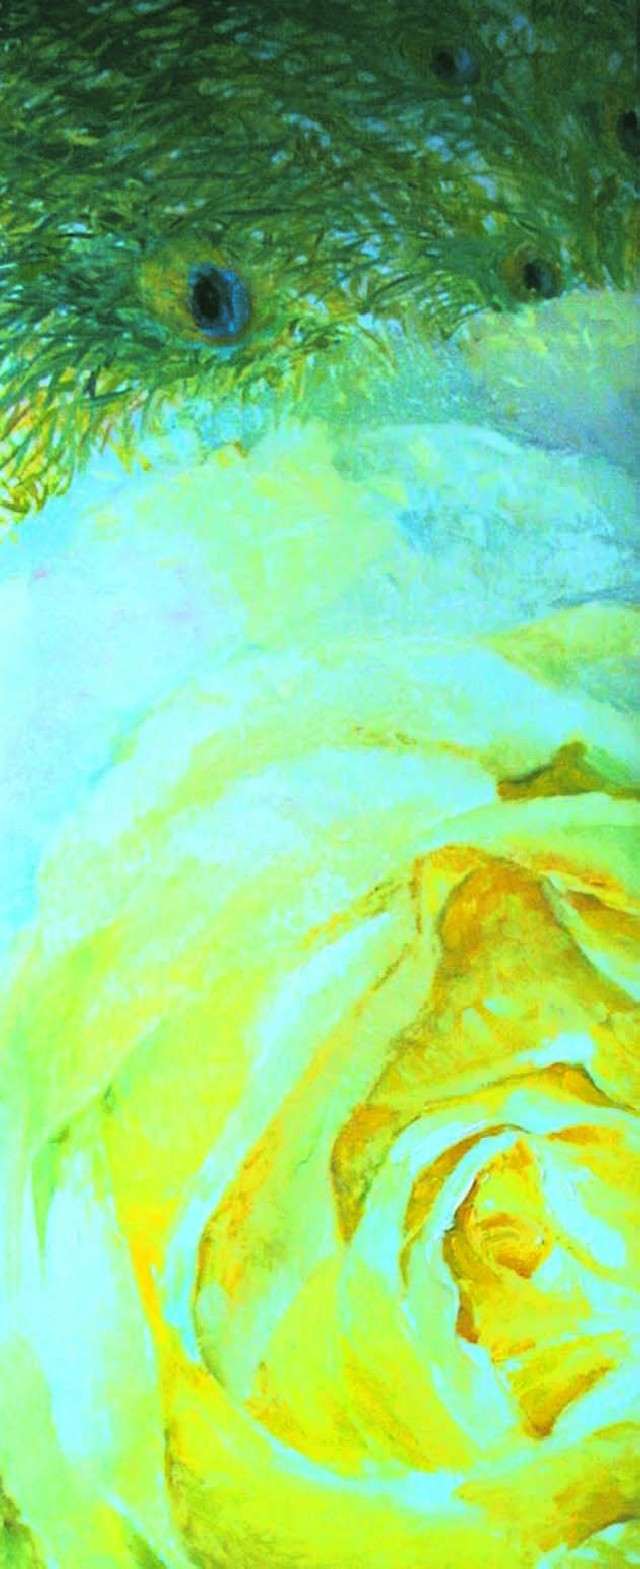 Yellow Rose And Peacock original painting by Vilma Vasiliauskaitė. Oil painting